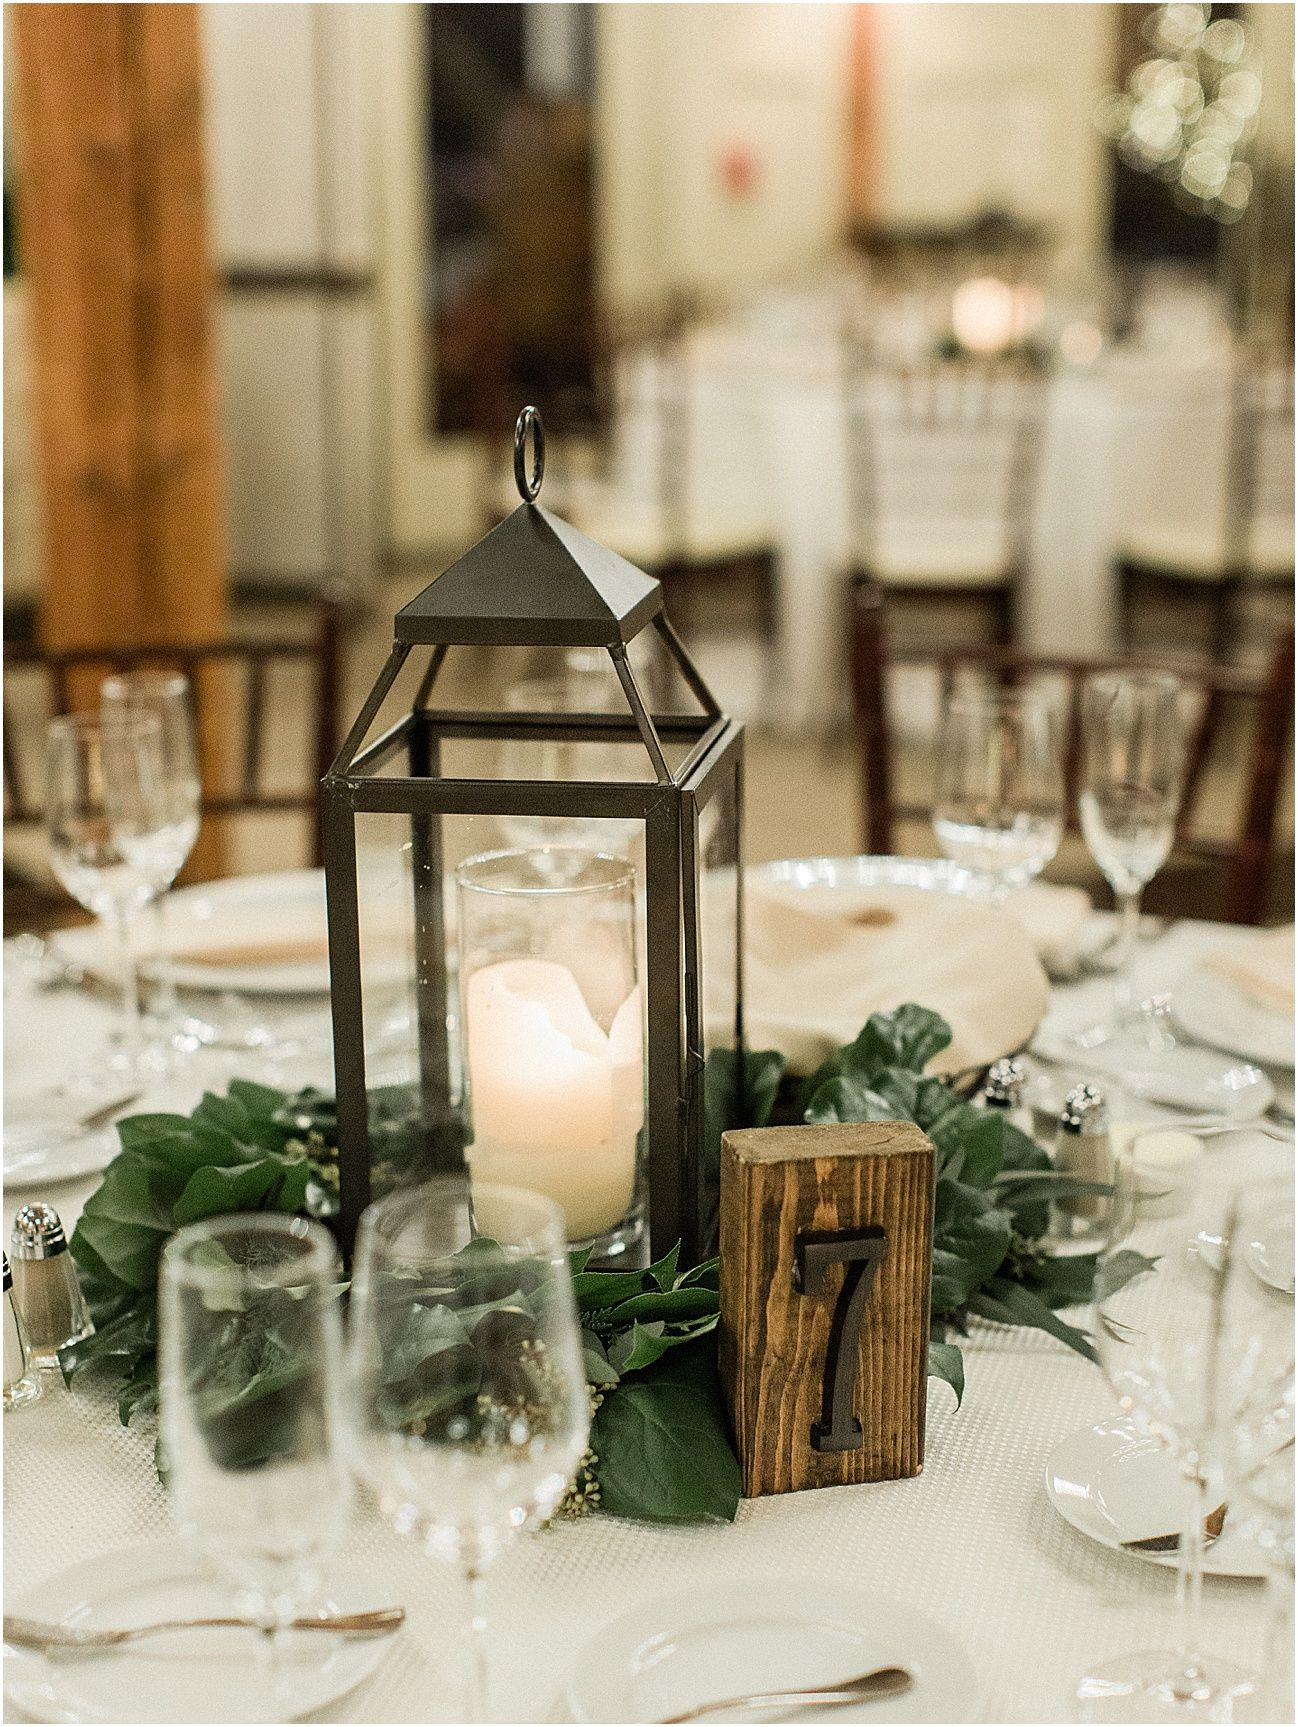 Wooden Table Numbers Lanterns Candle Wreaths Reception Tables Wedding Reception Table Decorations Wedding Reception Tables Centerpieces Winter Barn Weddings